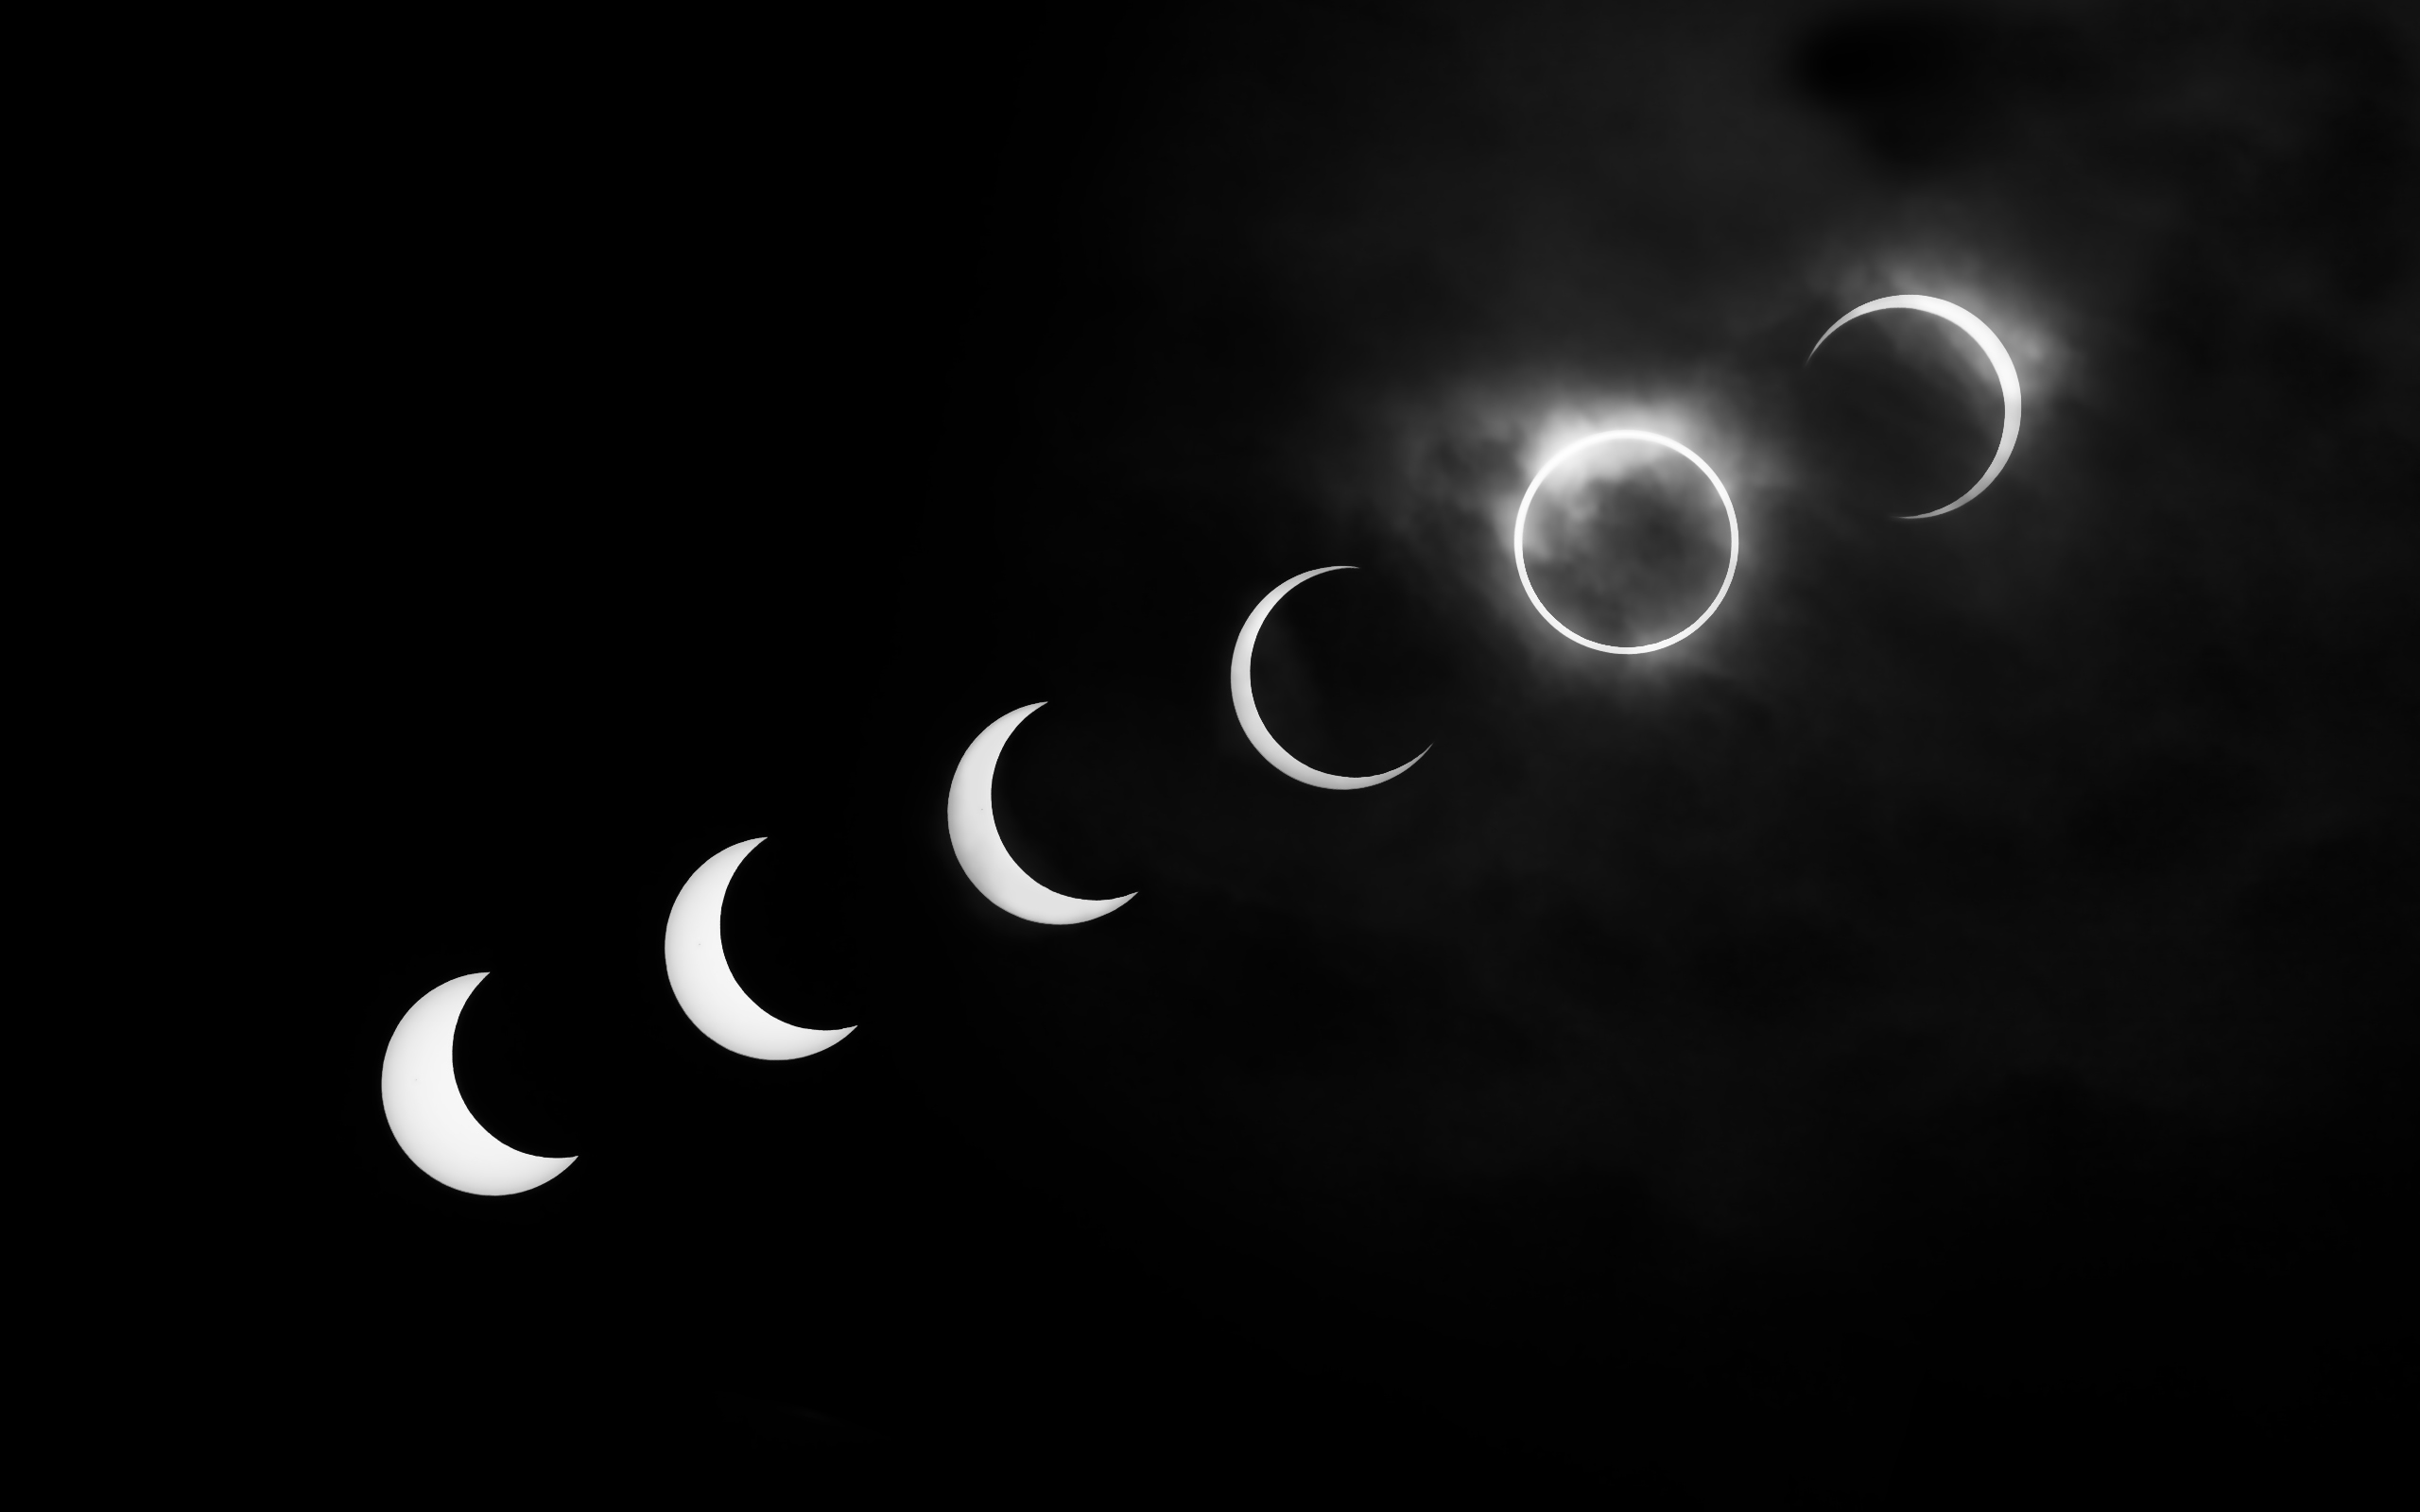 eclipse black and white deteched